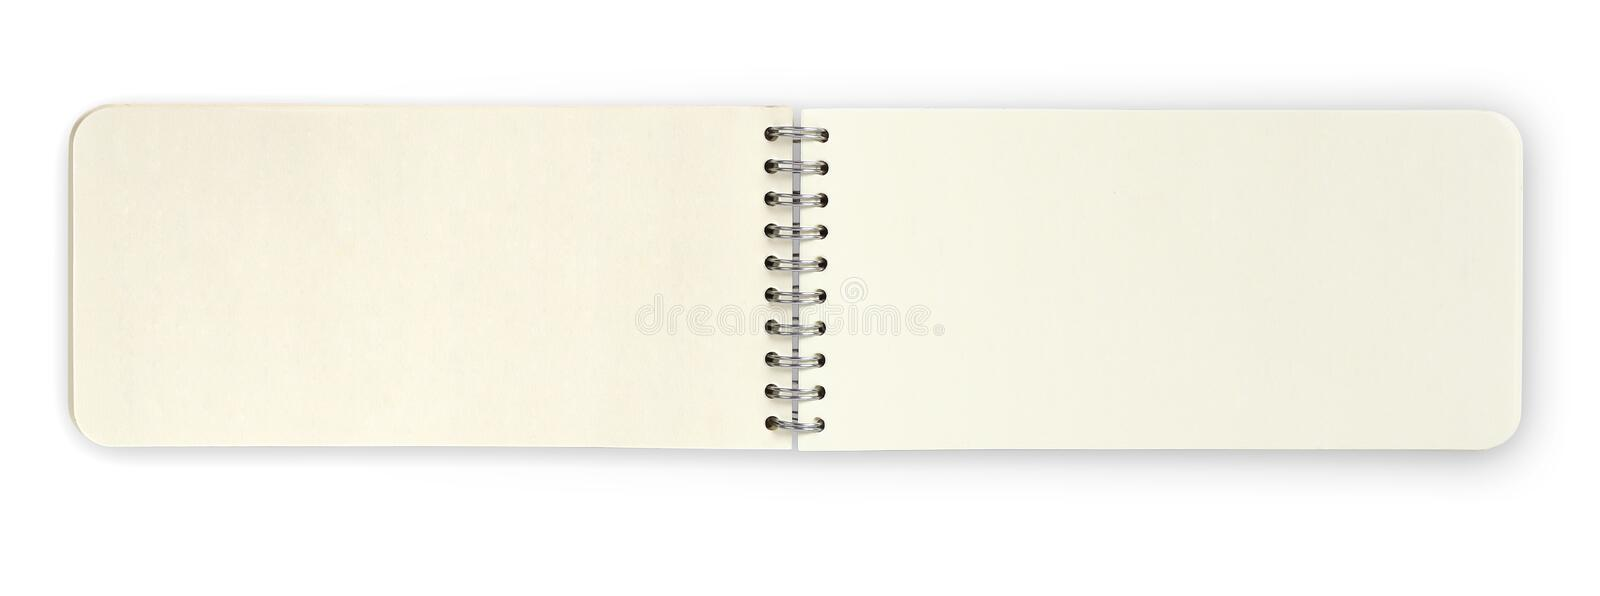 Open paper note book isolated over white background, clipping pa royalty free illustration